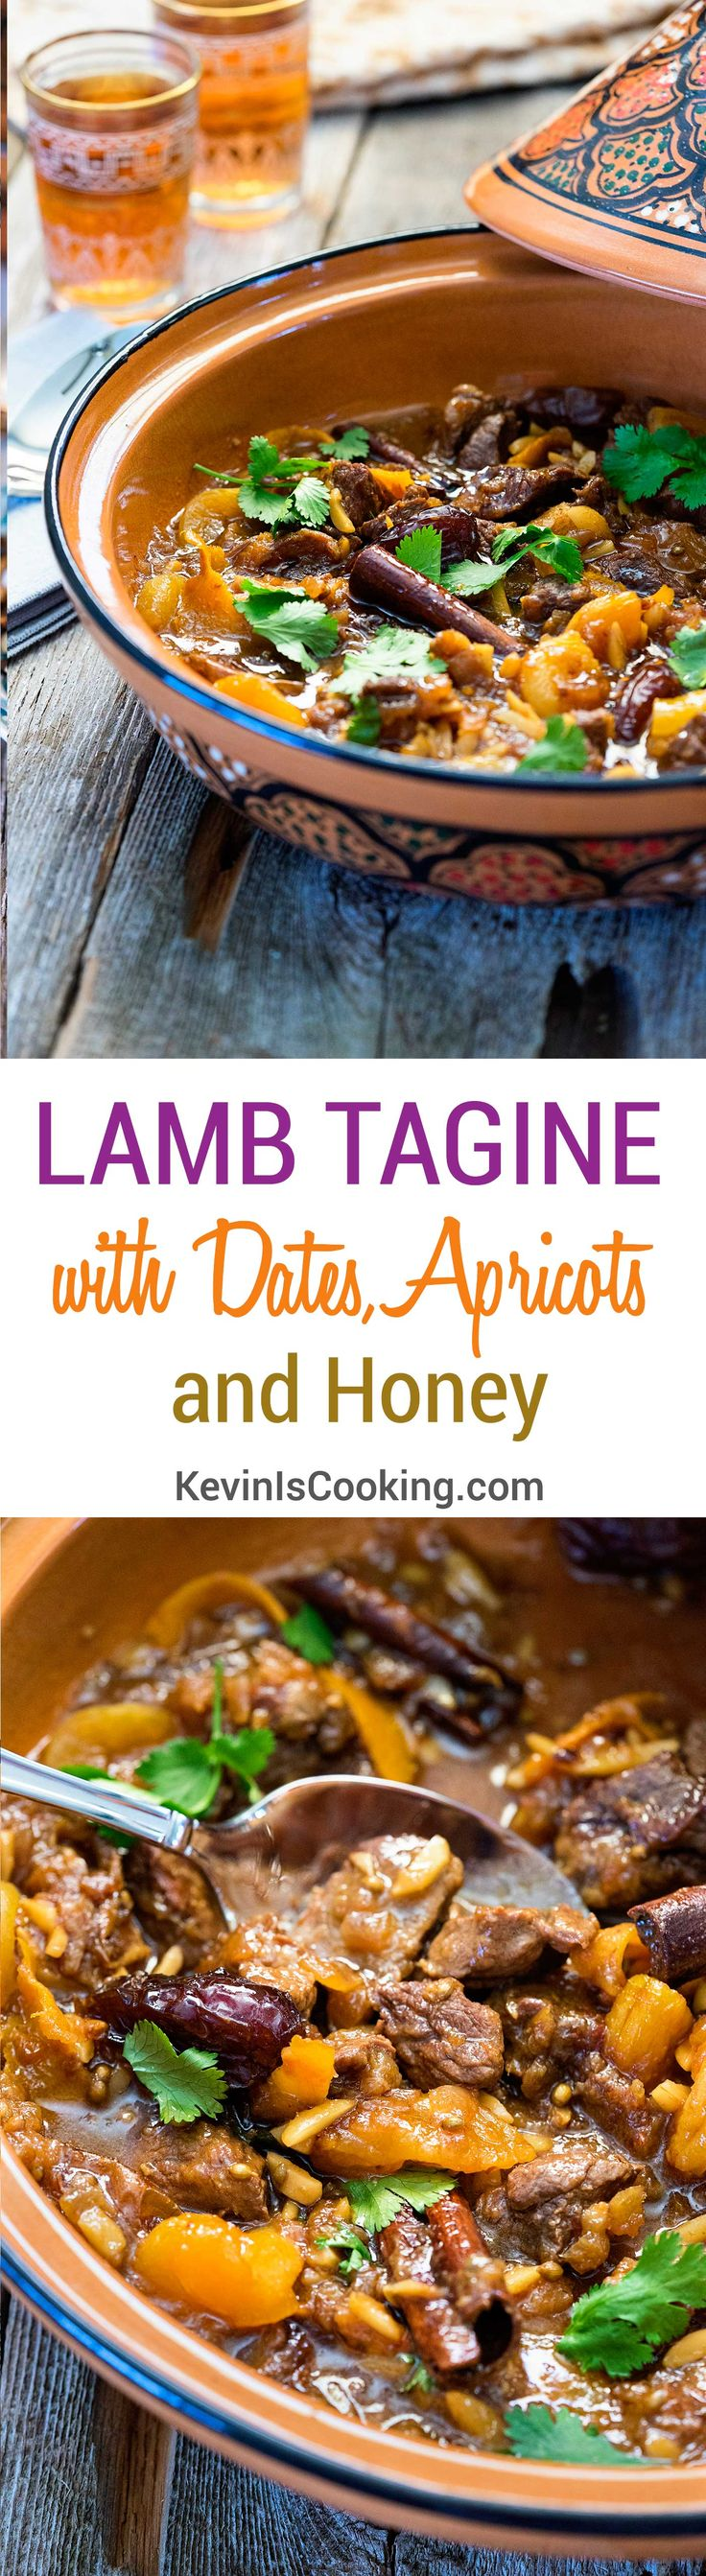 Lamb Tagine with Dates Apricots and Honey. .